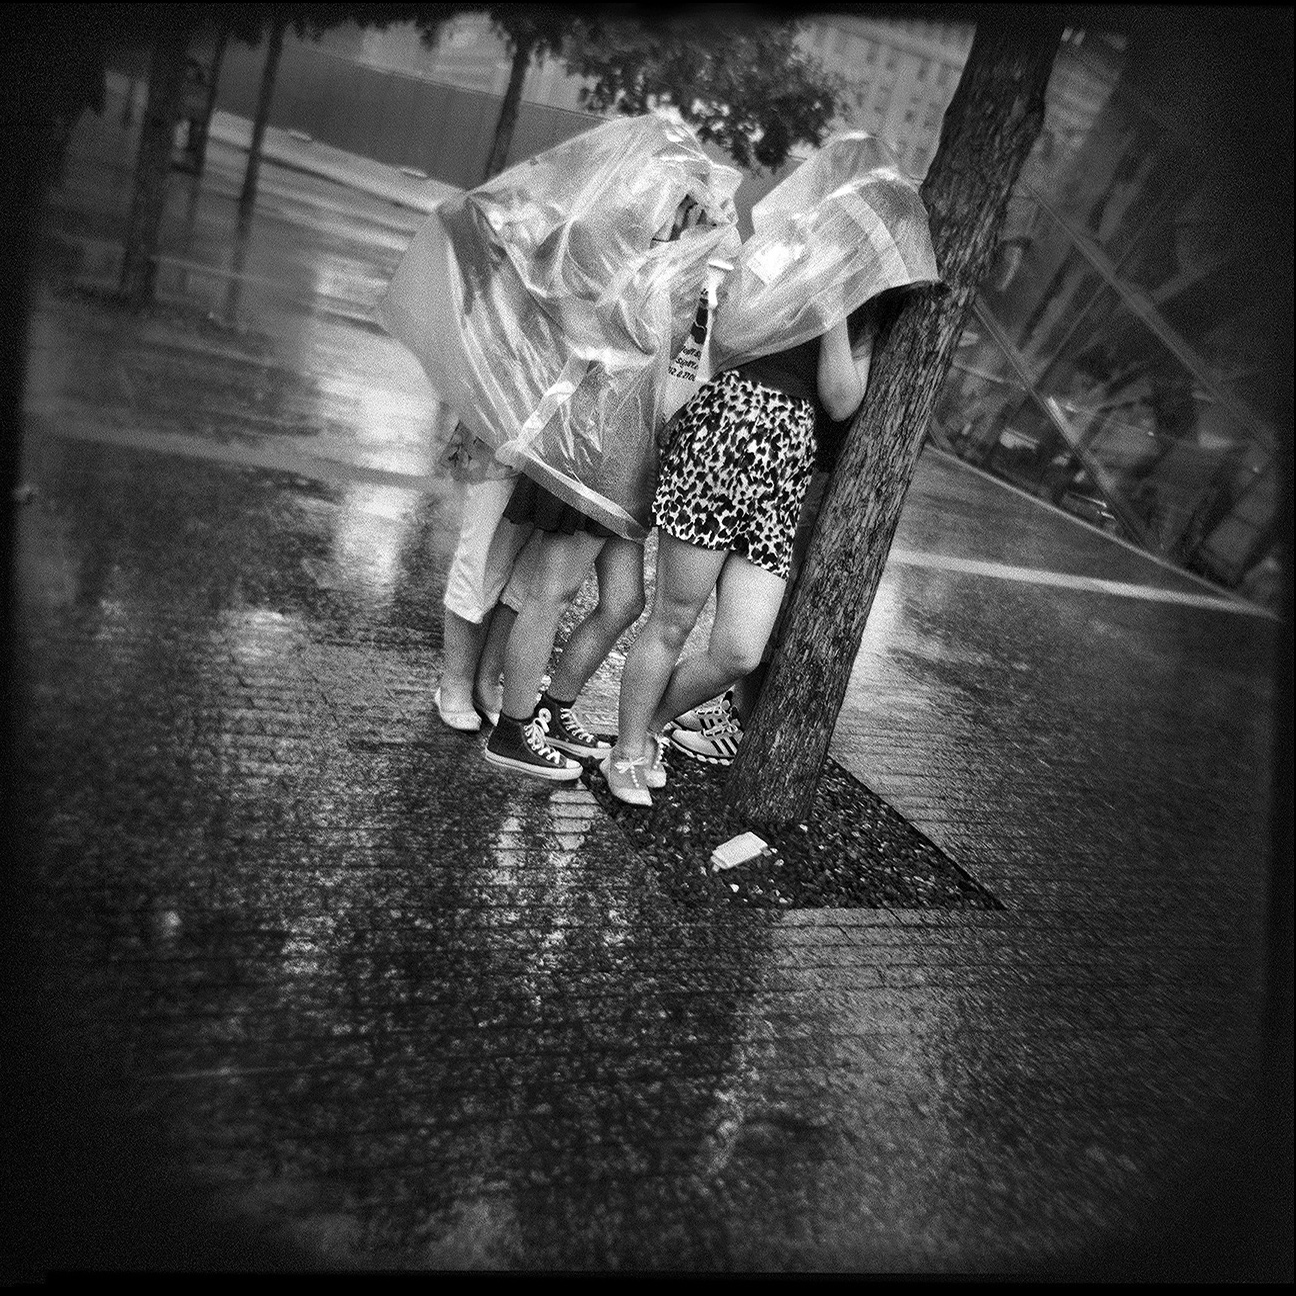 02-NYC-HOLGA-QD-Oct2014-FACEBOOK